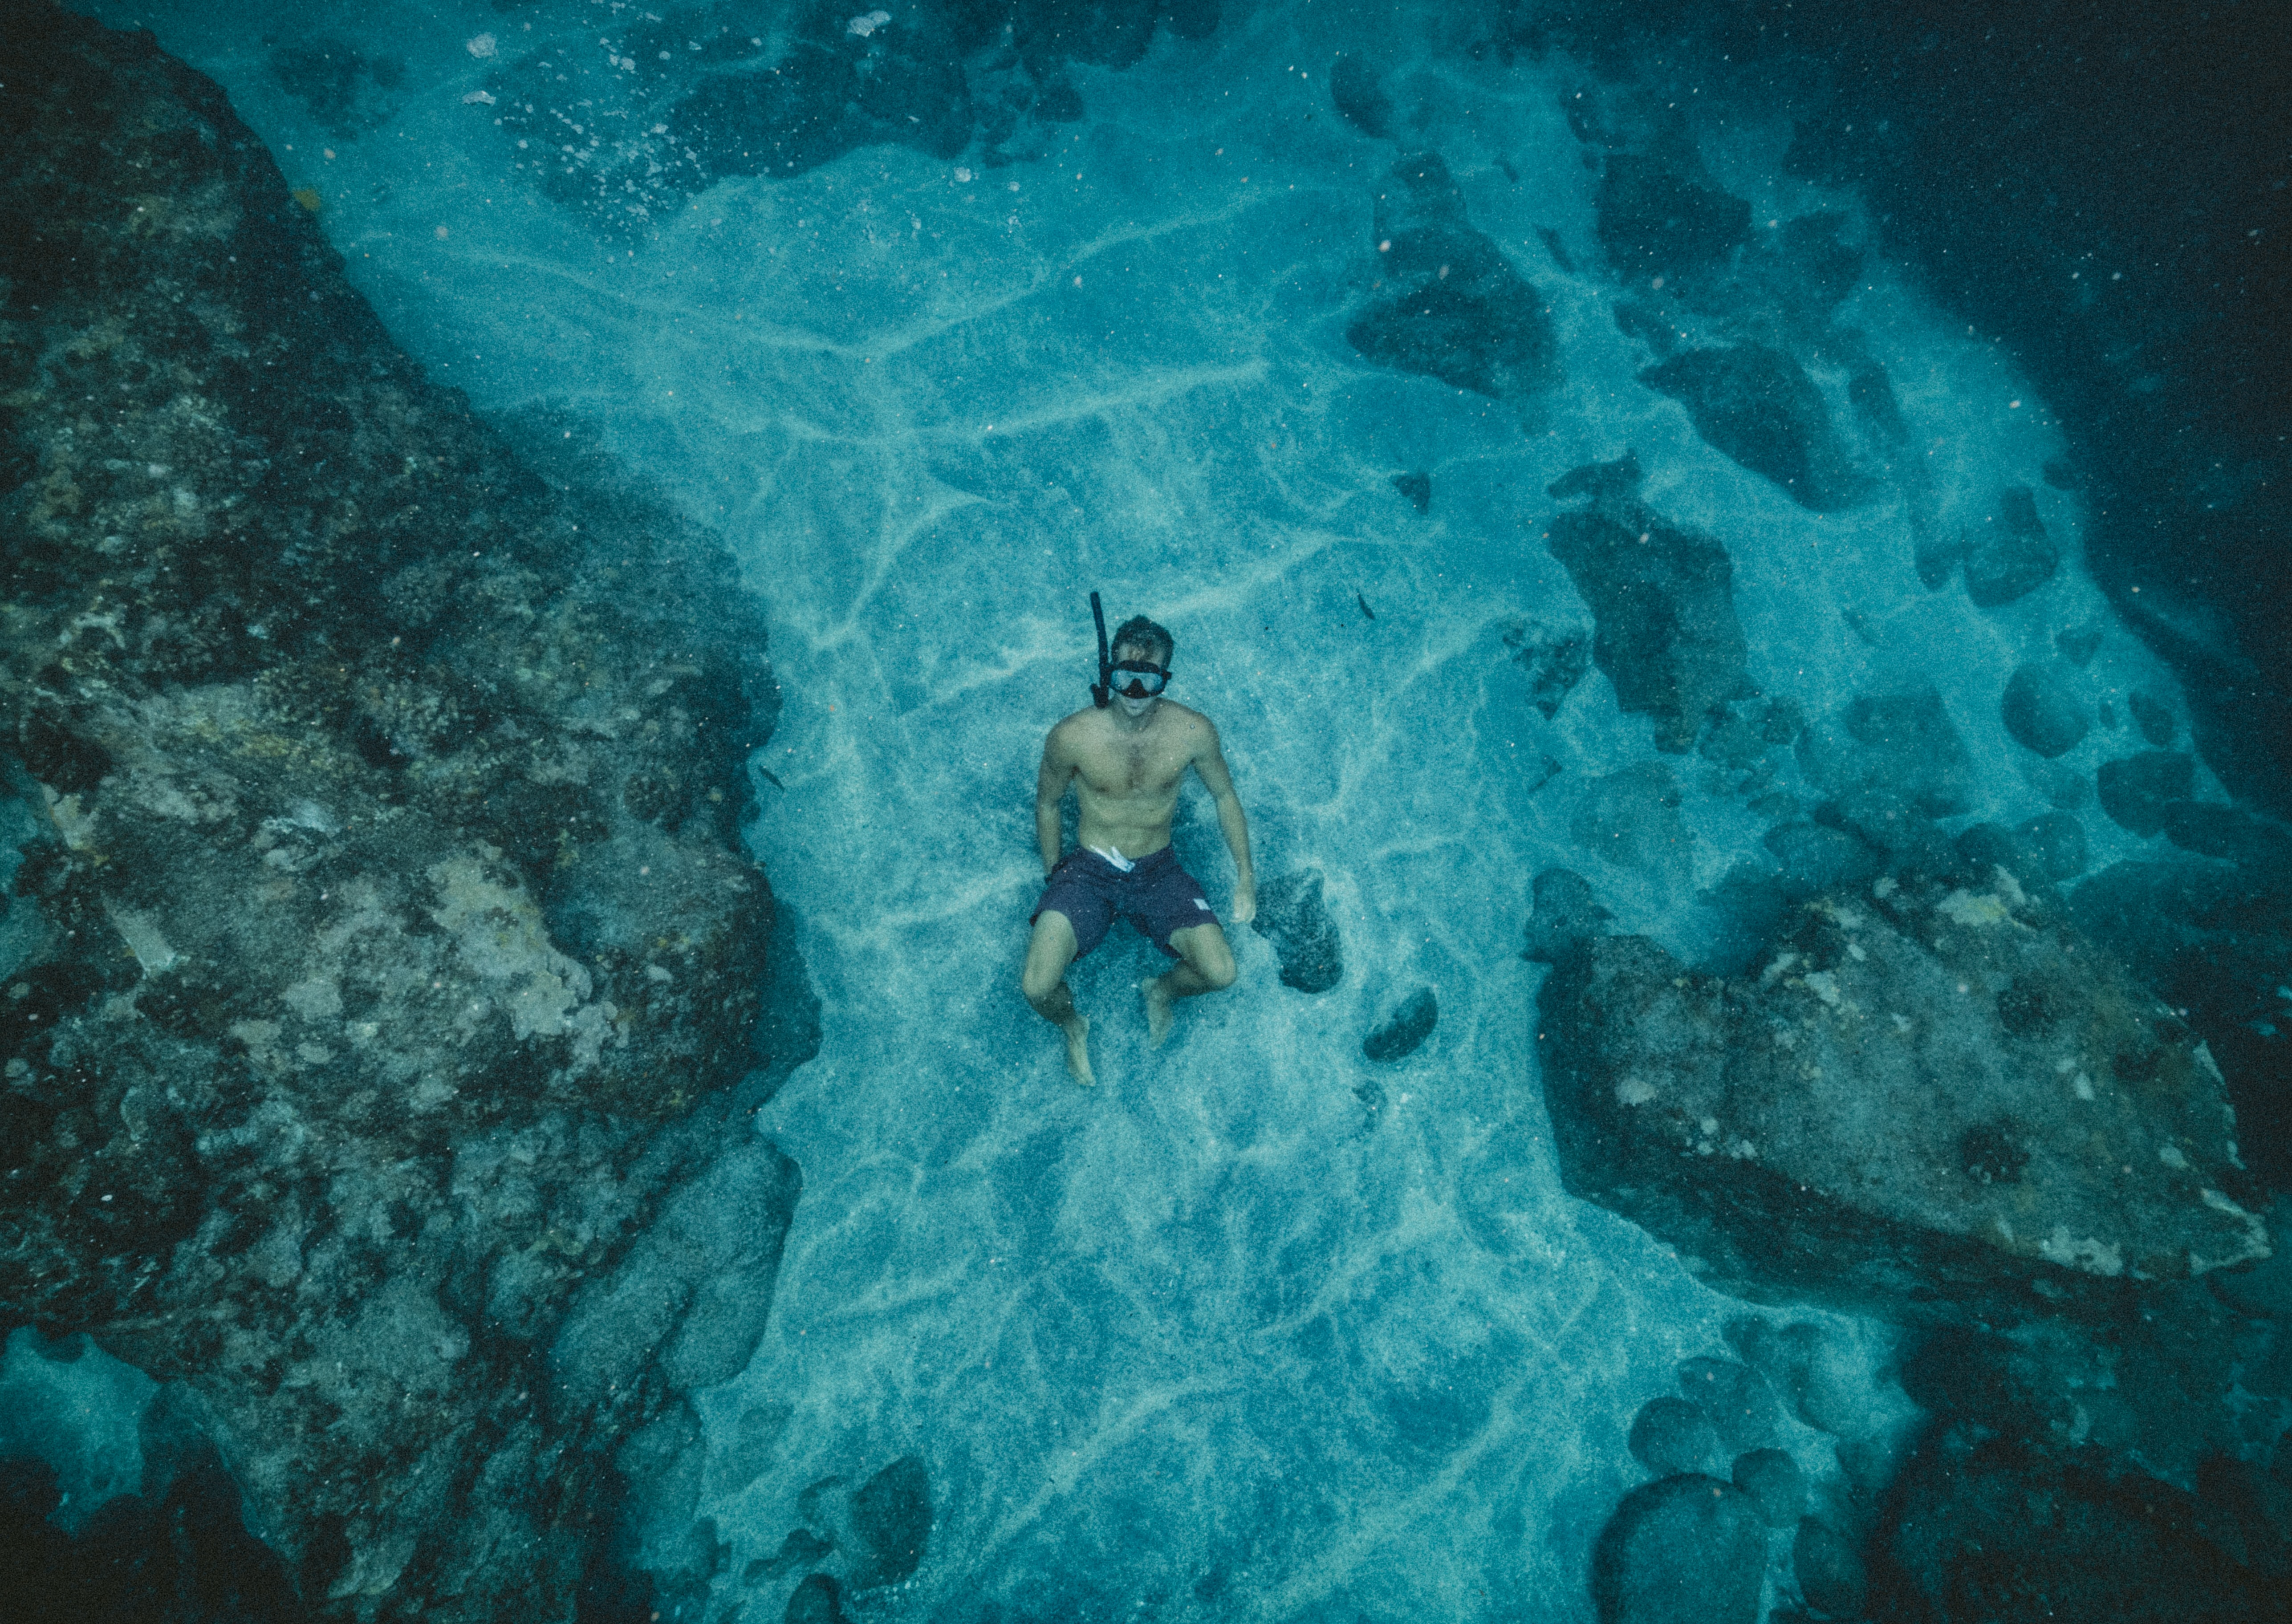 A man free diving in the sea surrounded by coral and rocks